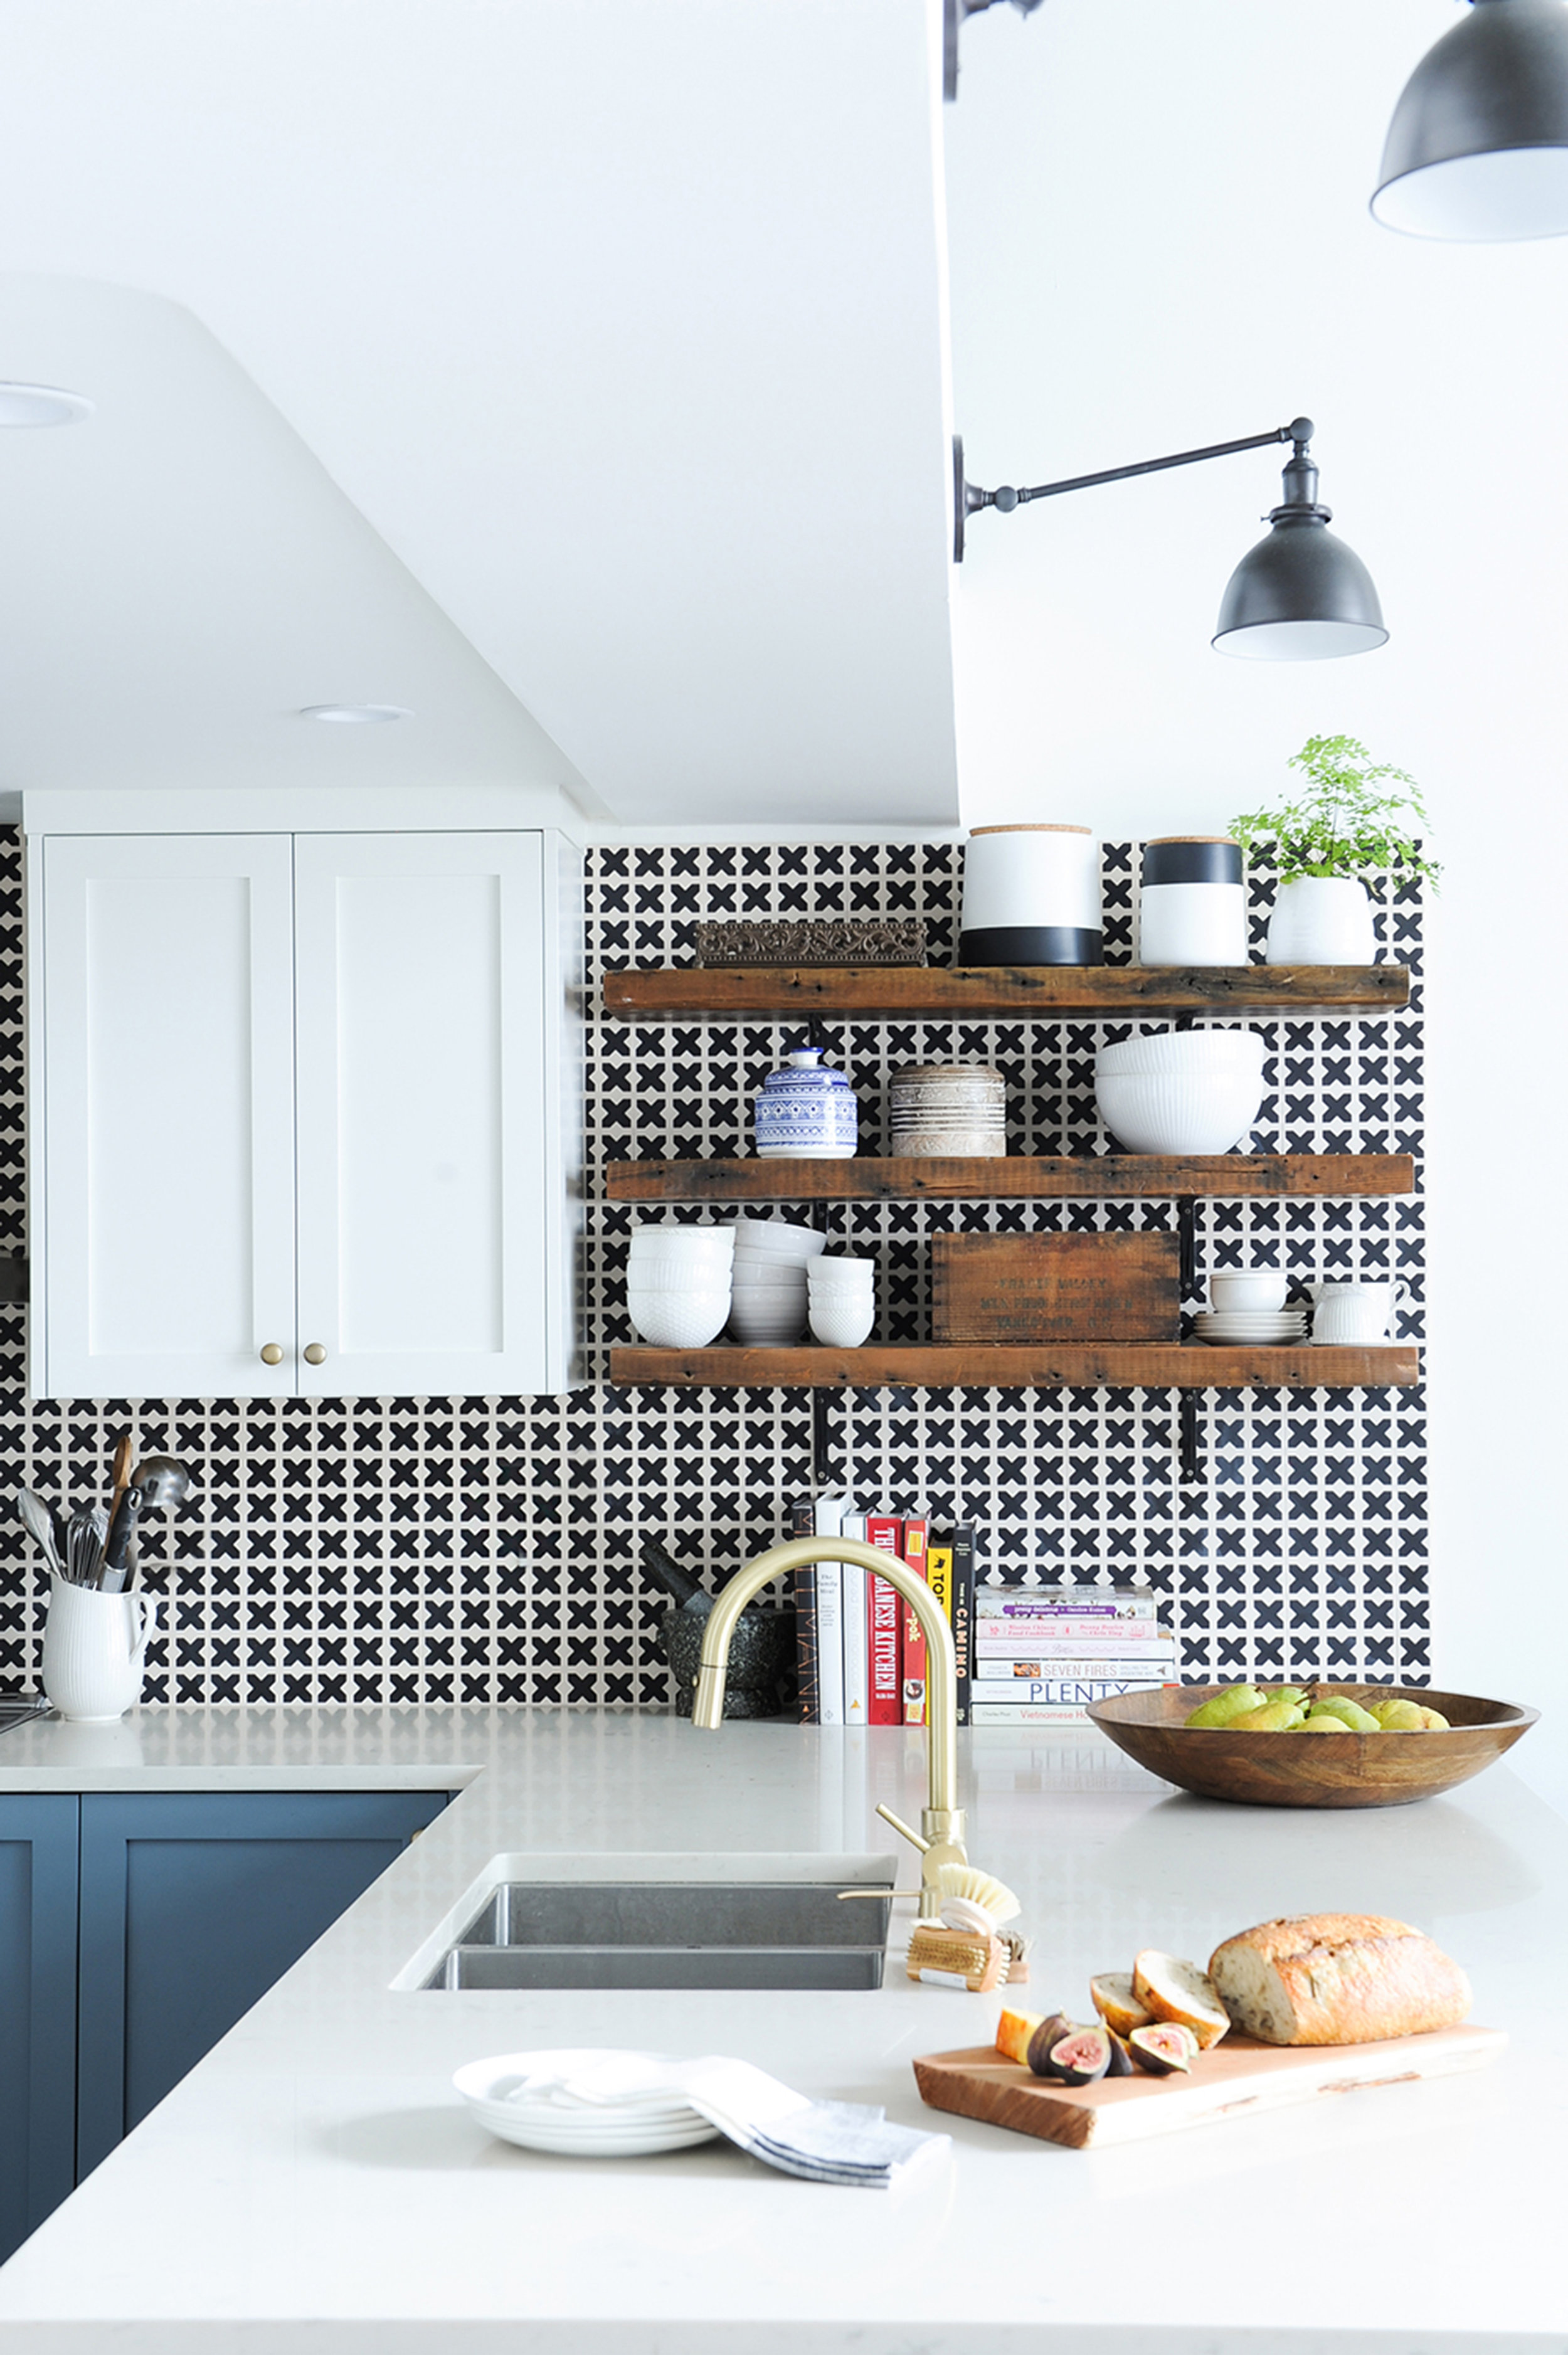 A sunlit kitchen counter and wooden shelves on a black and white patterned tiled wall, complete with various kitchen items, including bowls and ceramic jars on the shelves, and a wooden bowl of fruit and a wooden plank with bread and figs sitting on the counter.